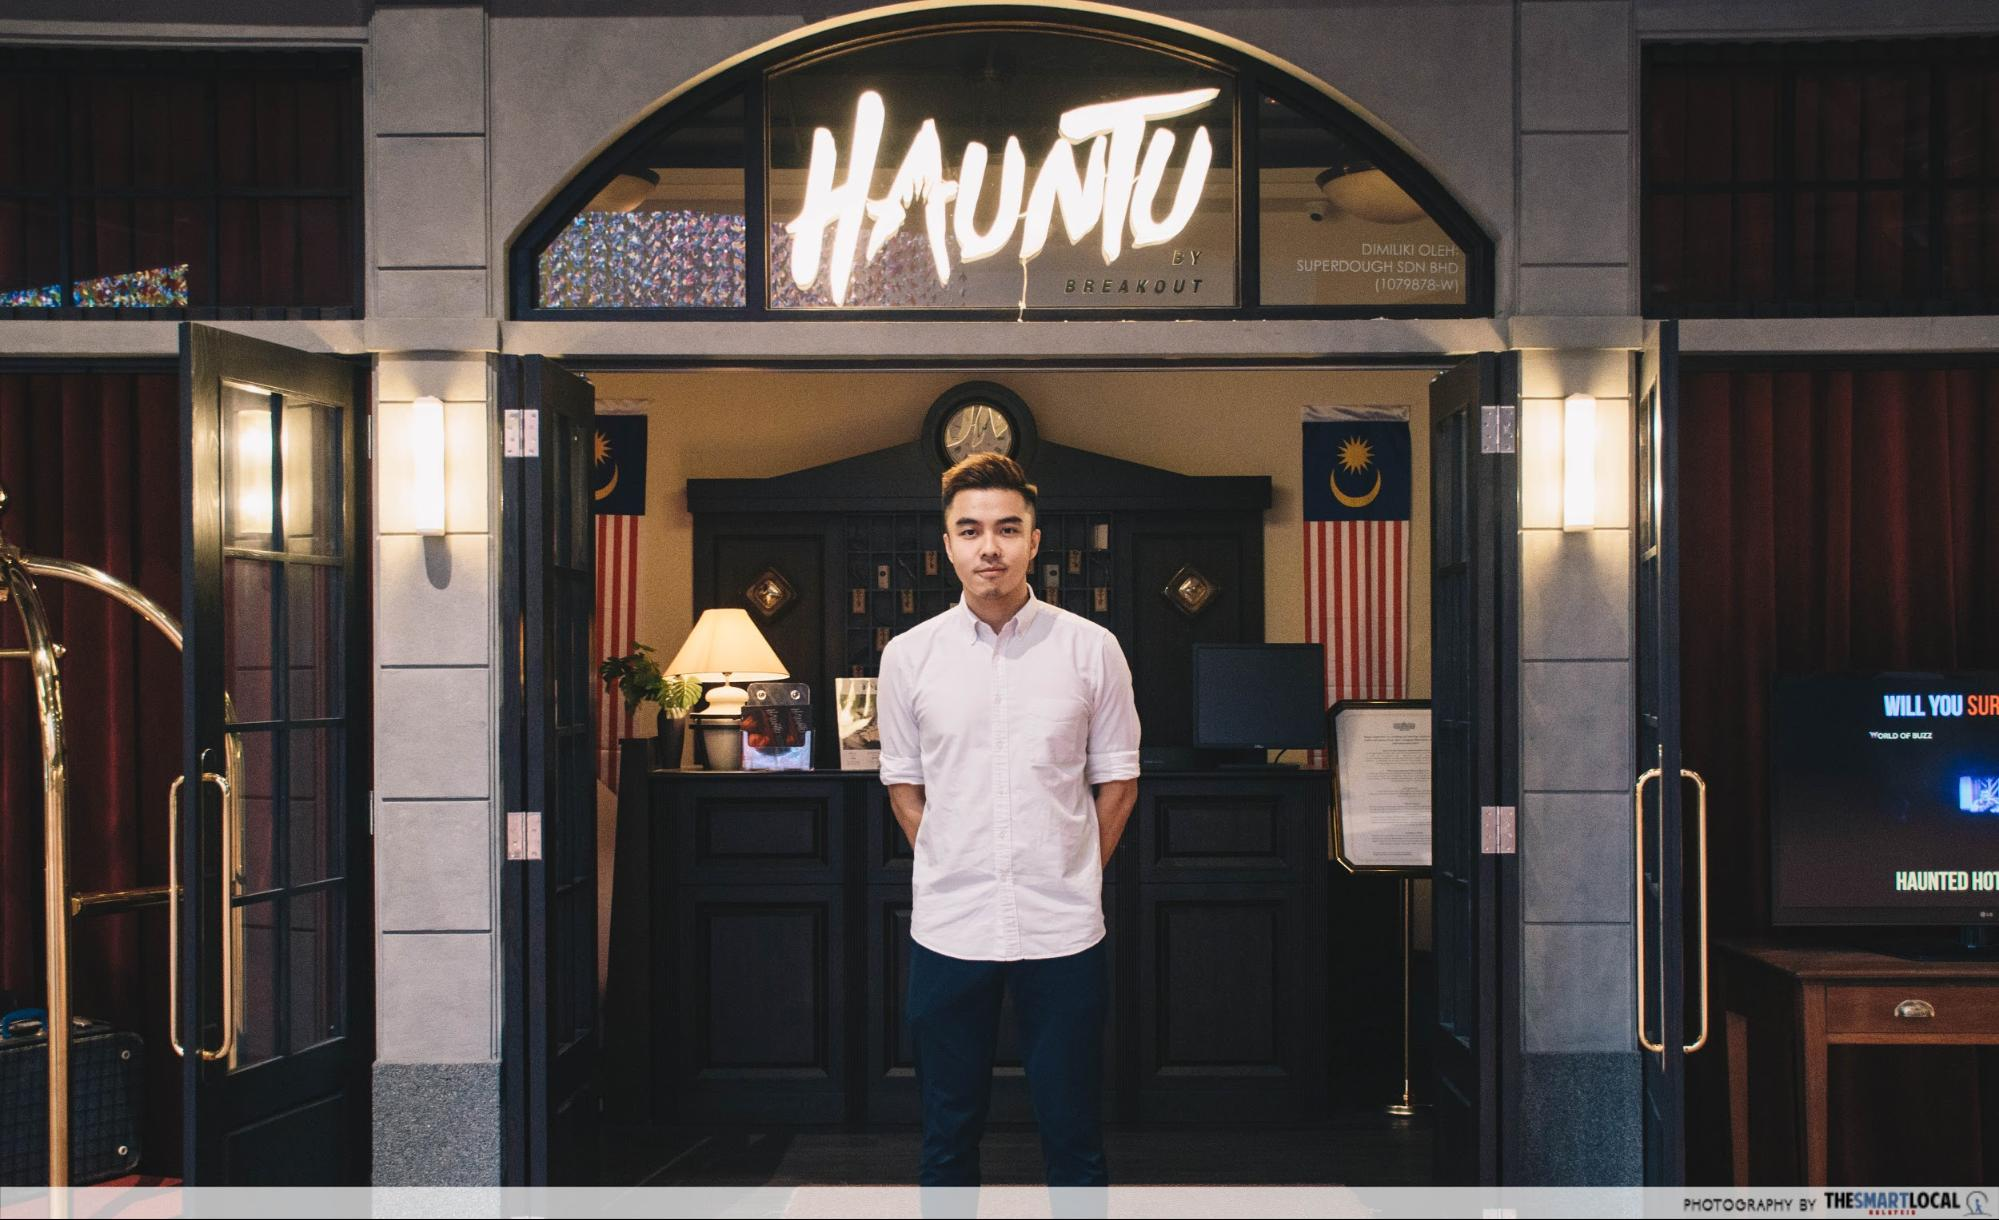 Hauntu co-founder